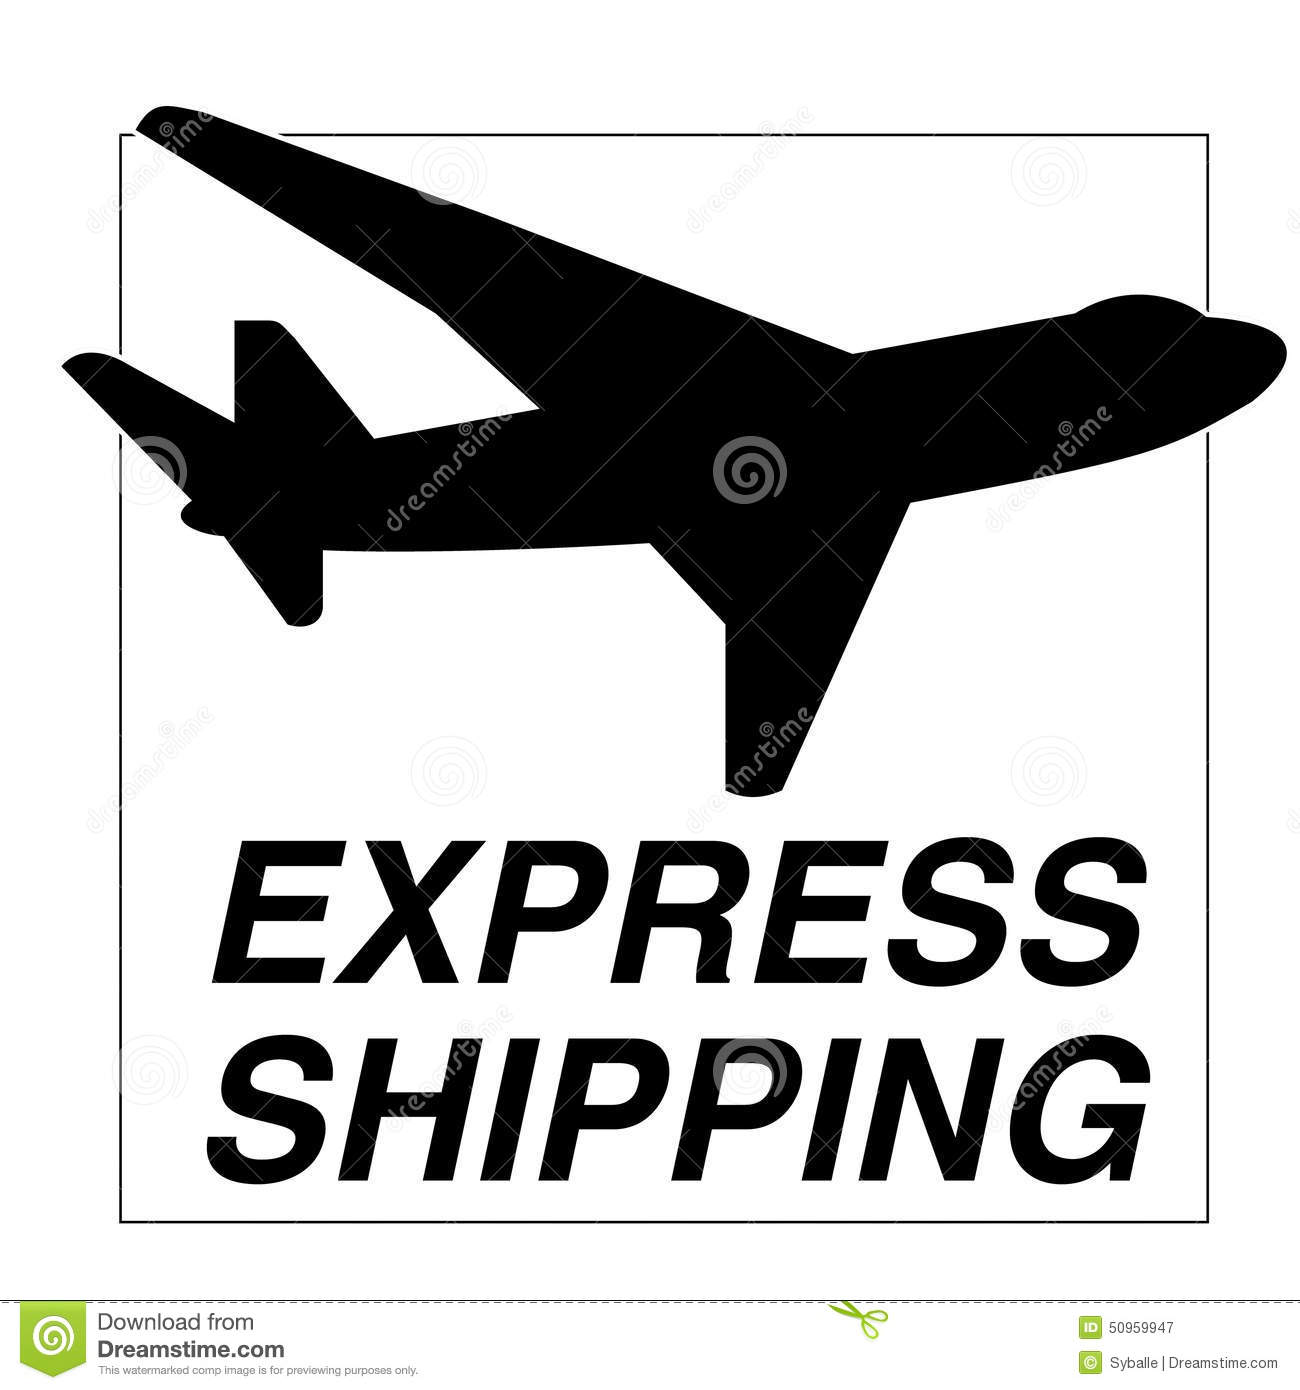 Express shipping online shopping